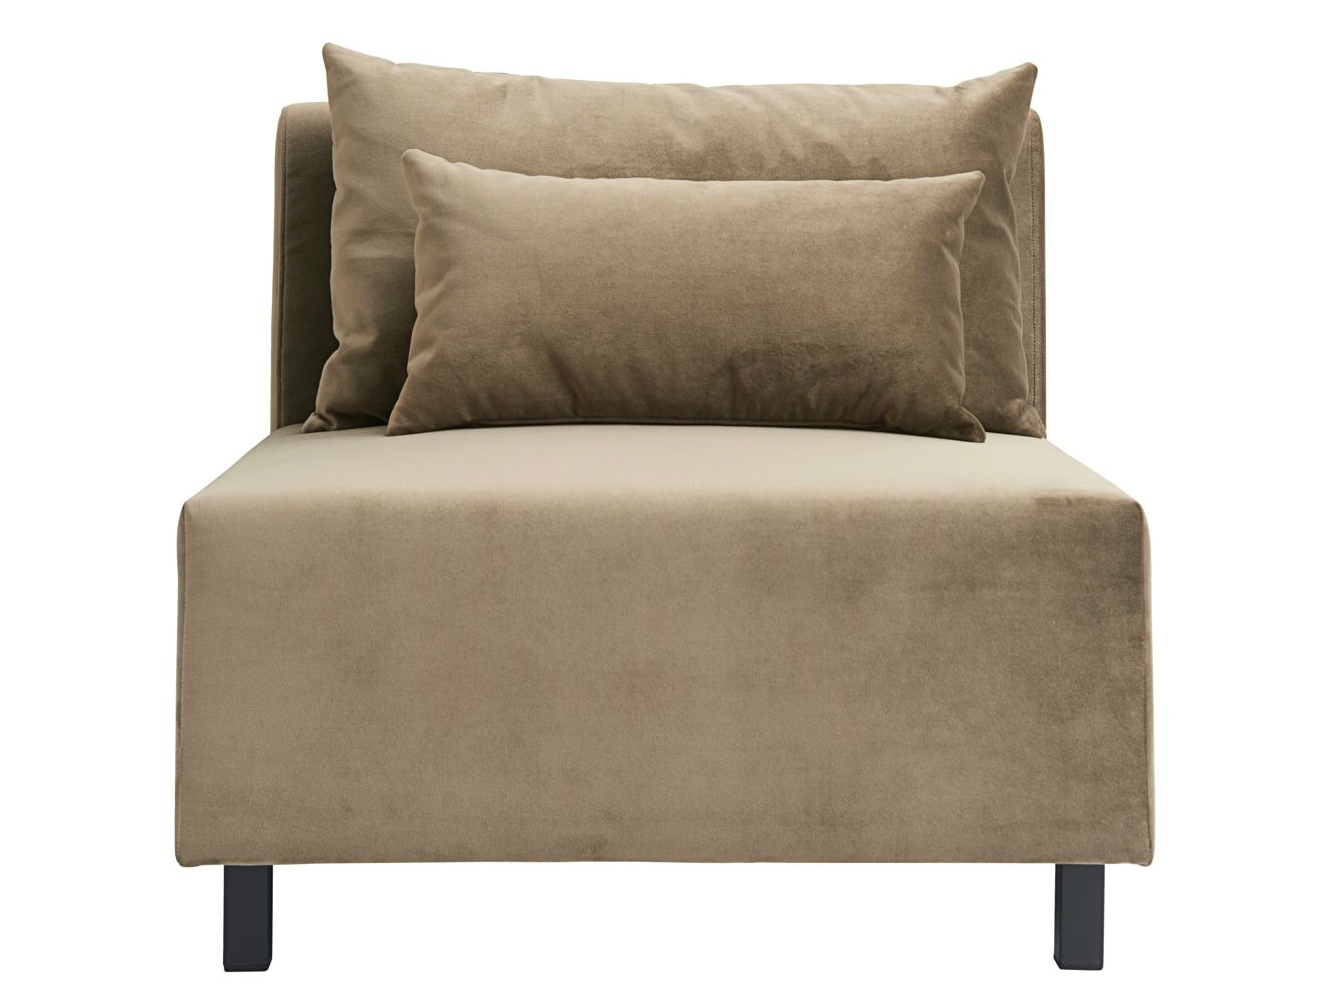 Banken - Housedoctor-bank-sofa-element-zand-bruin-velvet-middenelement-85x85x77-cm-def